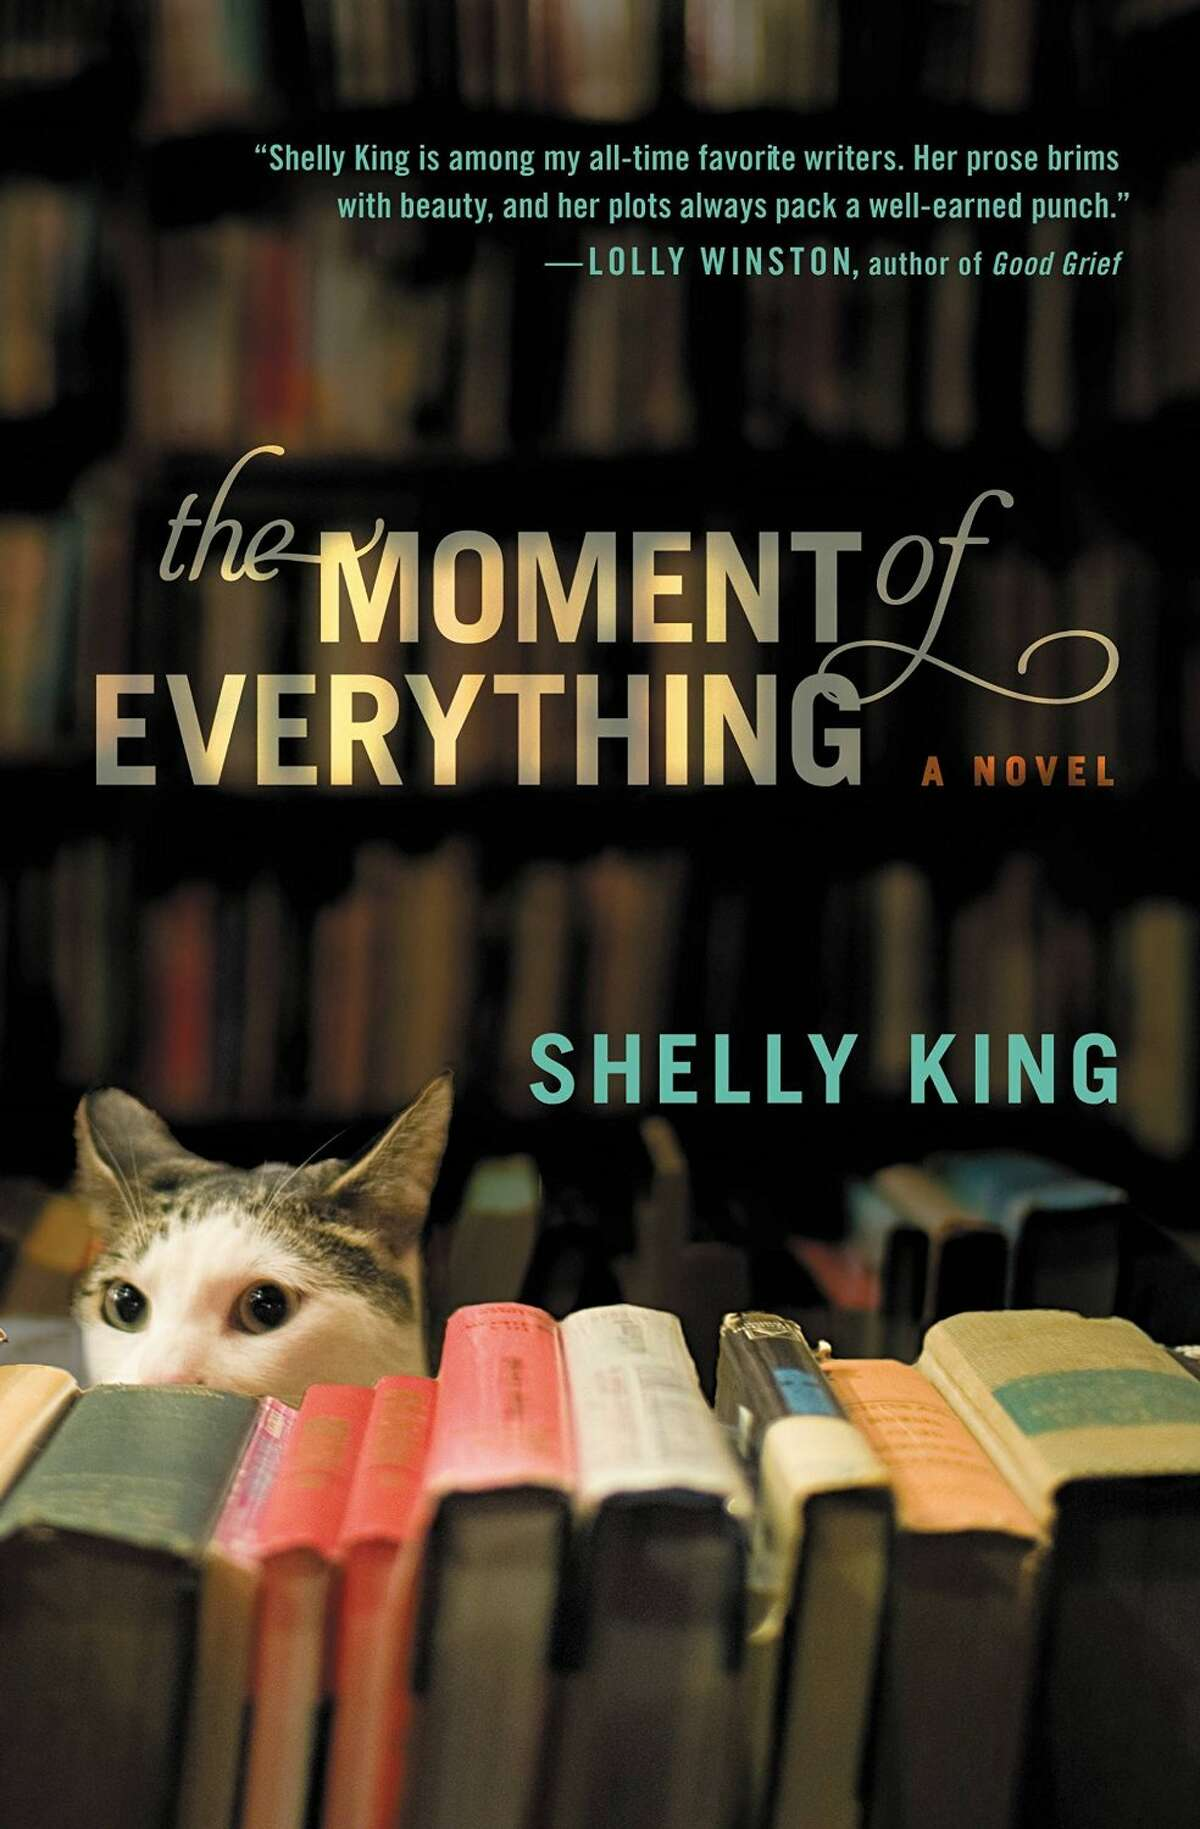 ?The Moment of Everything? (Hachette, September) by Shelly King.